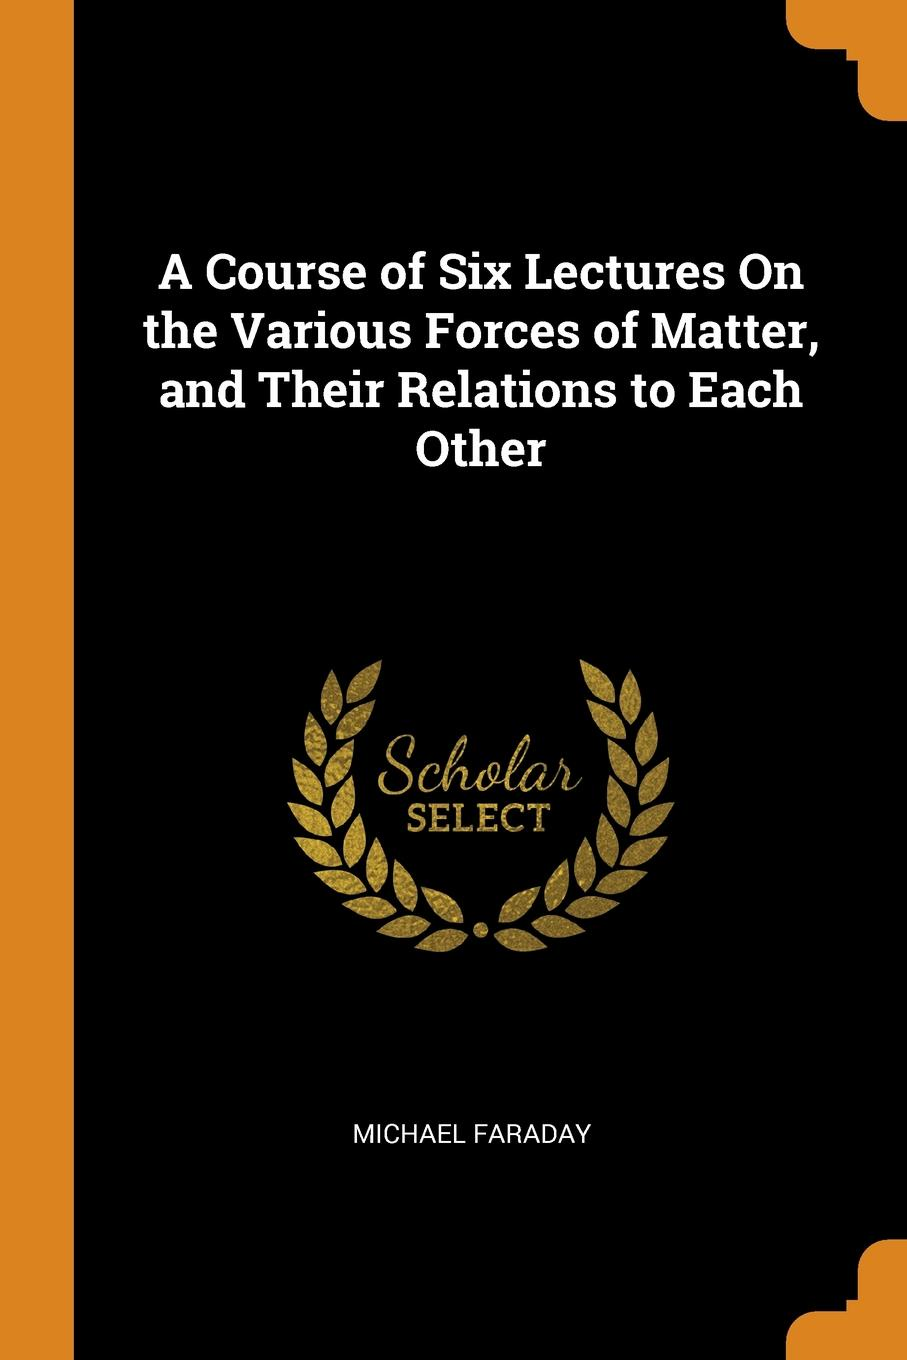 Michael Faraday A Course of Six Lectures On the Various Forces of Matter, and Their Relations to Each Other faraday michael on the various forces of nature and their relations to each other